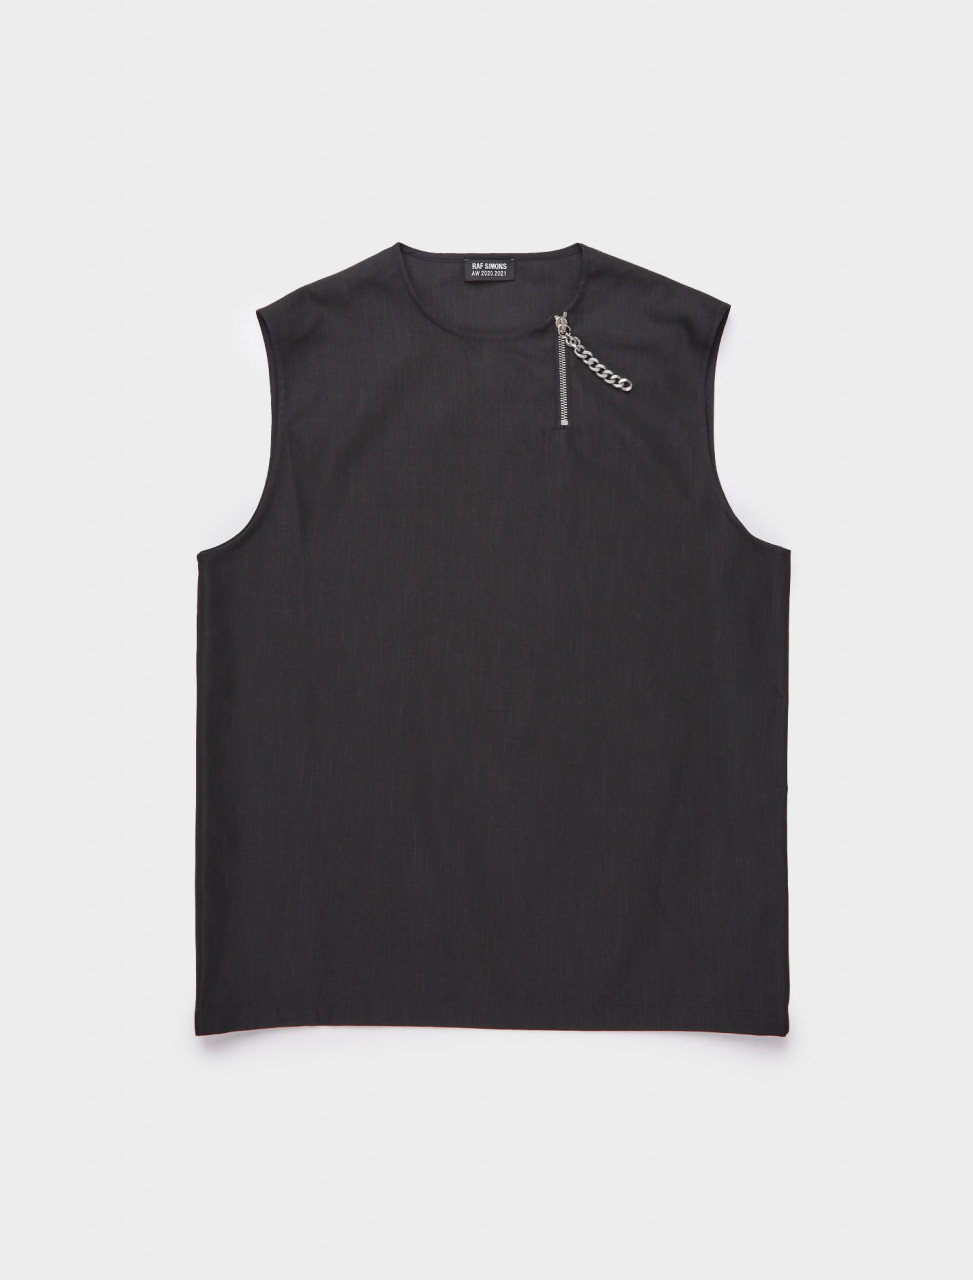 162-202-401A-30006-00099 RAF SIMONS SLEEVELESS TOP W CHAINED ZIP BLACK